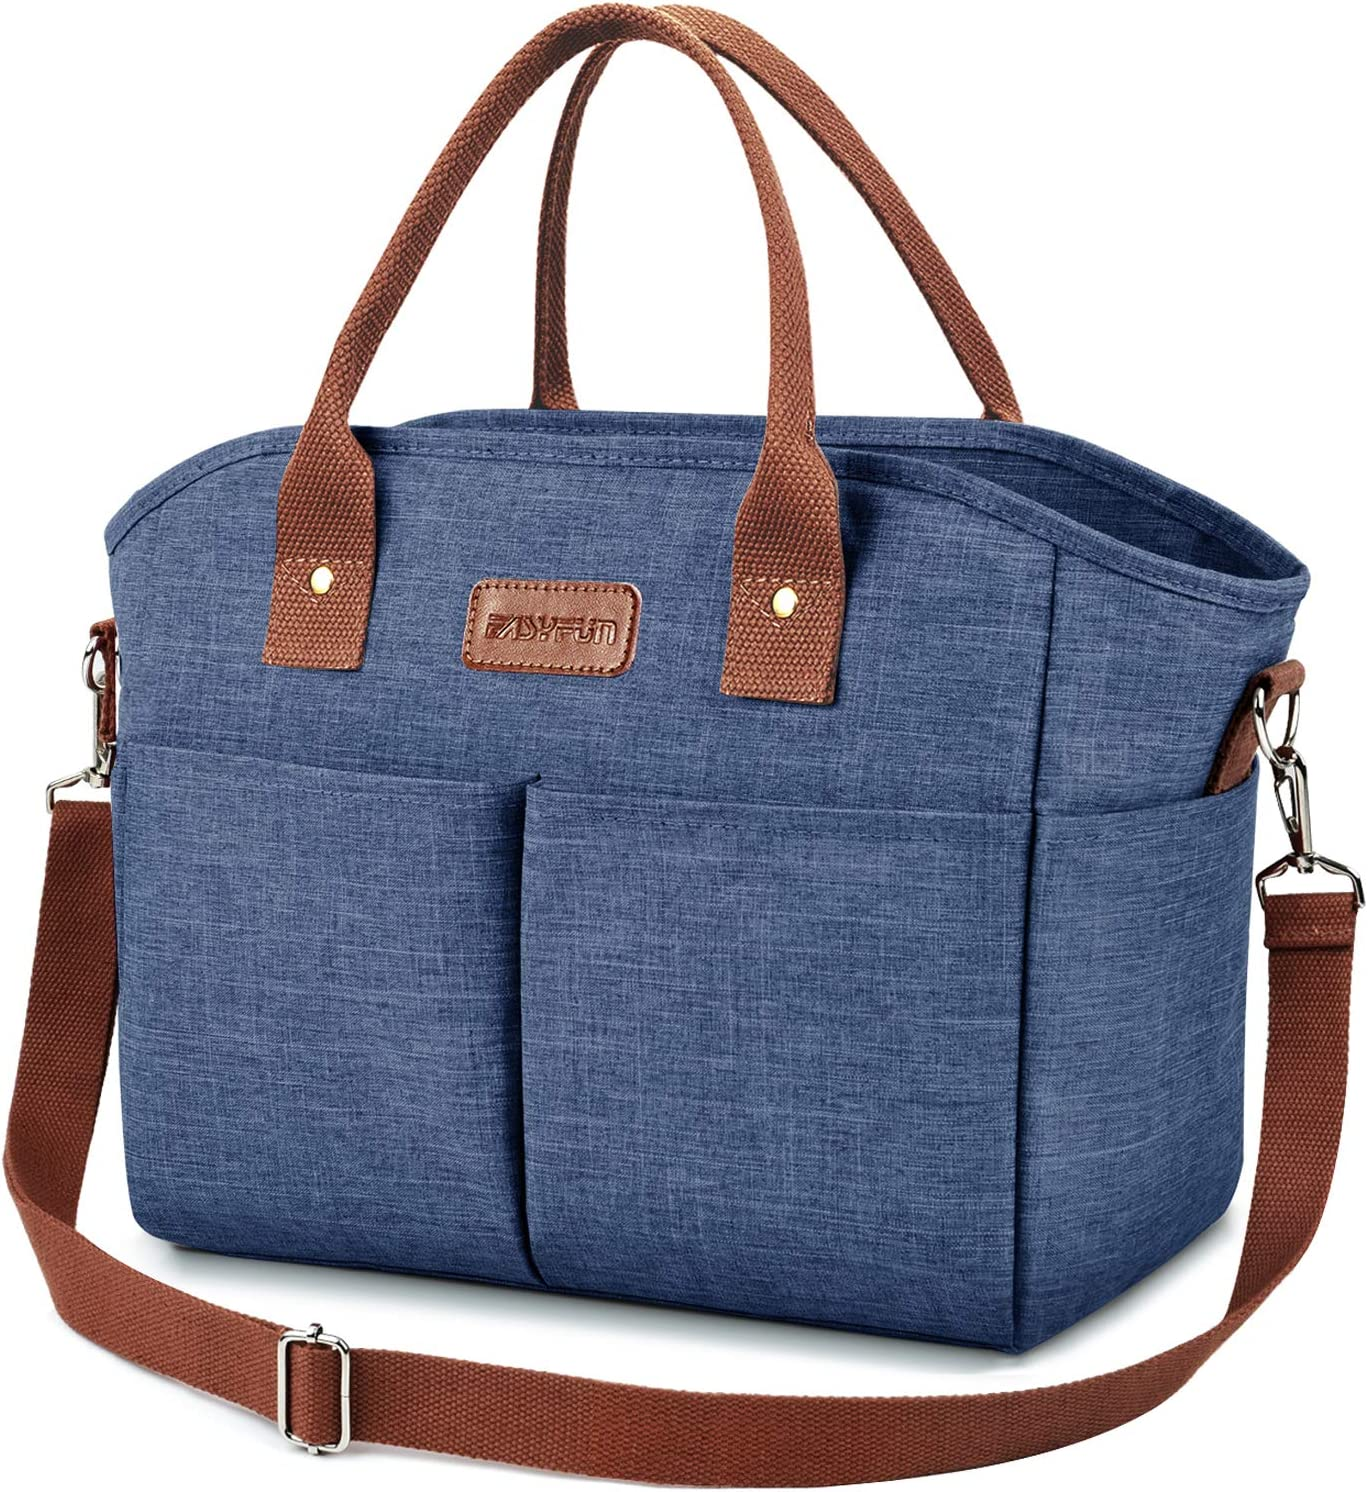 Lunch Bags for Women Insulated Thermal Lunch Tote Bag with Shoulder Strap Upgrade Large Lunch Box Container Drinks Holder for Adults Men Work College Picnic Beach Park, Blue